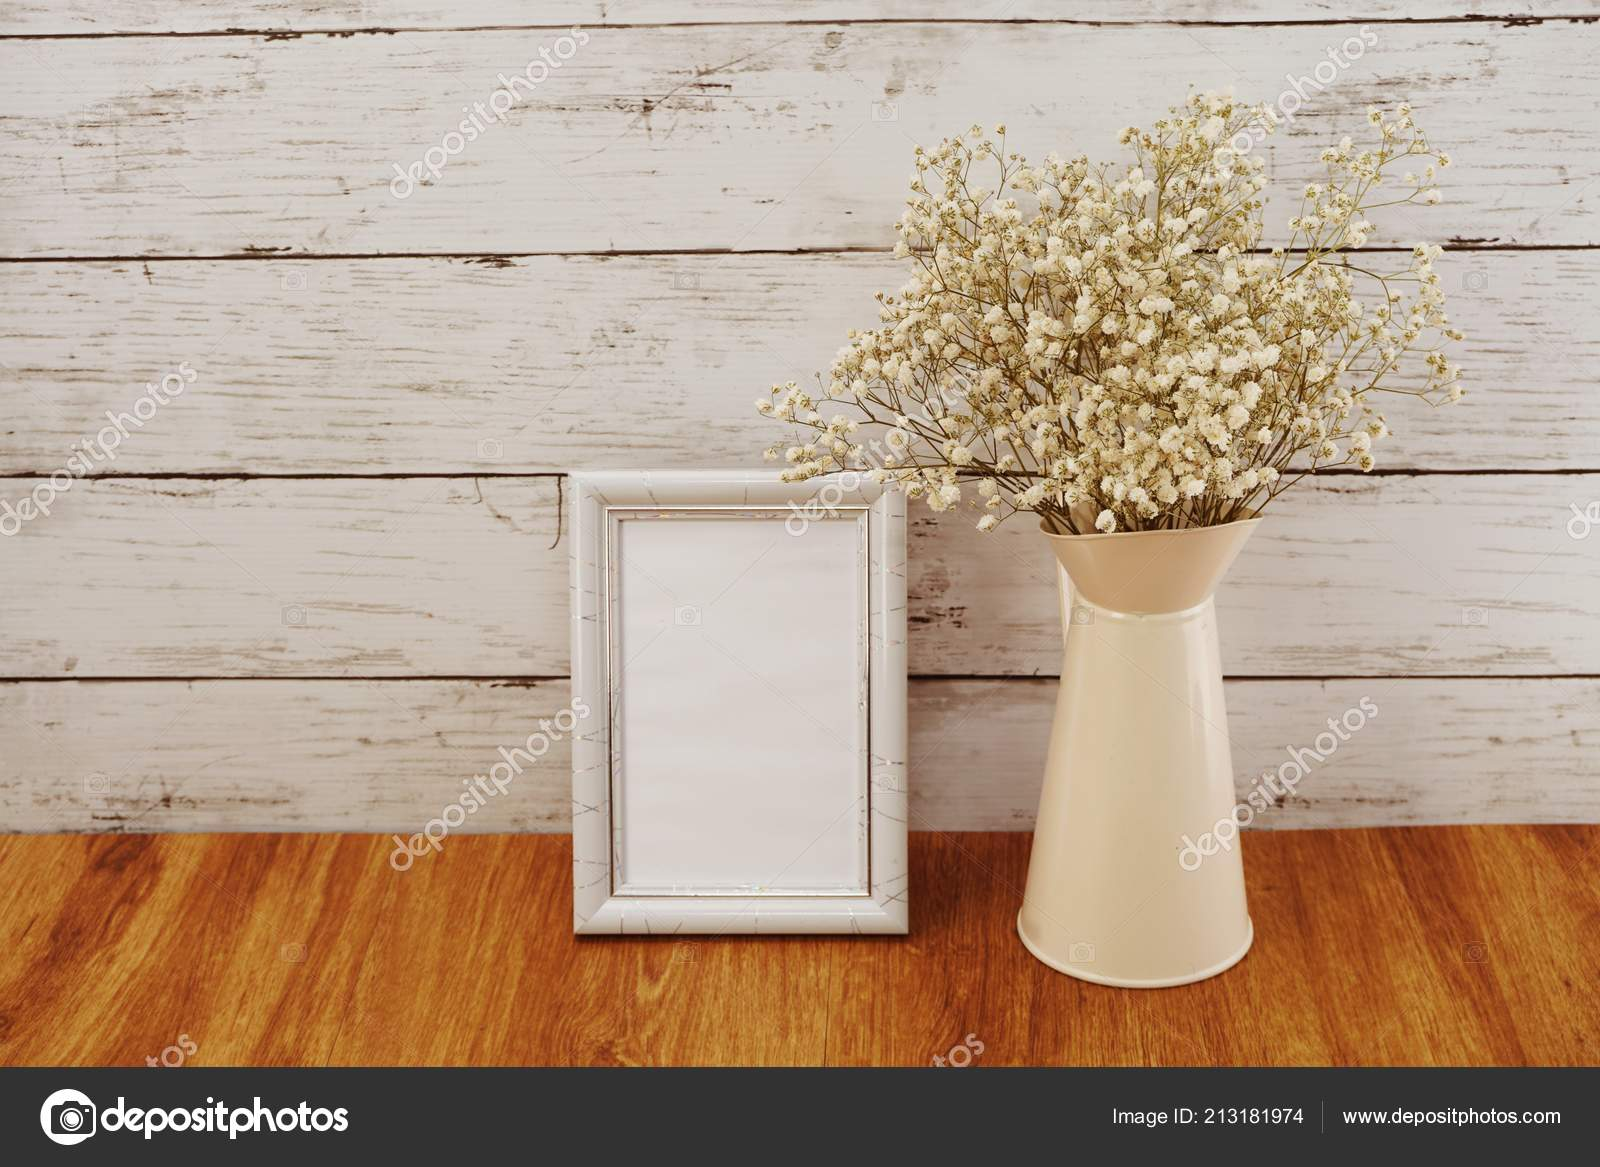 Space Photo Frame Dried Flower Metal Flower Pot — Stock Photo